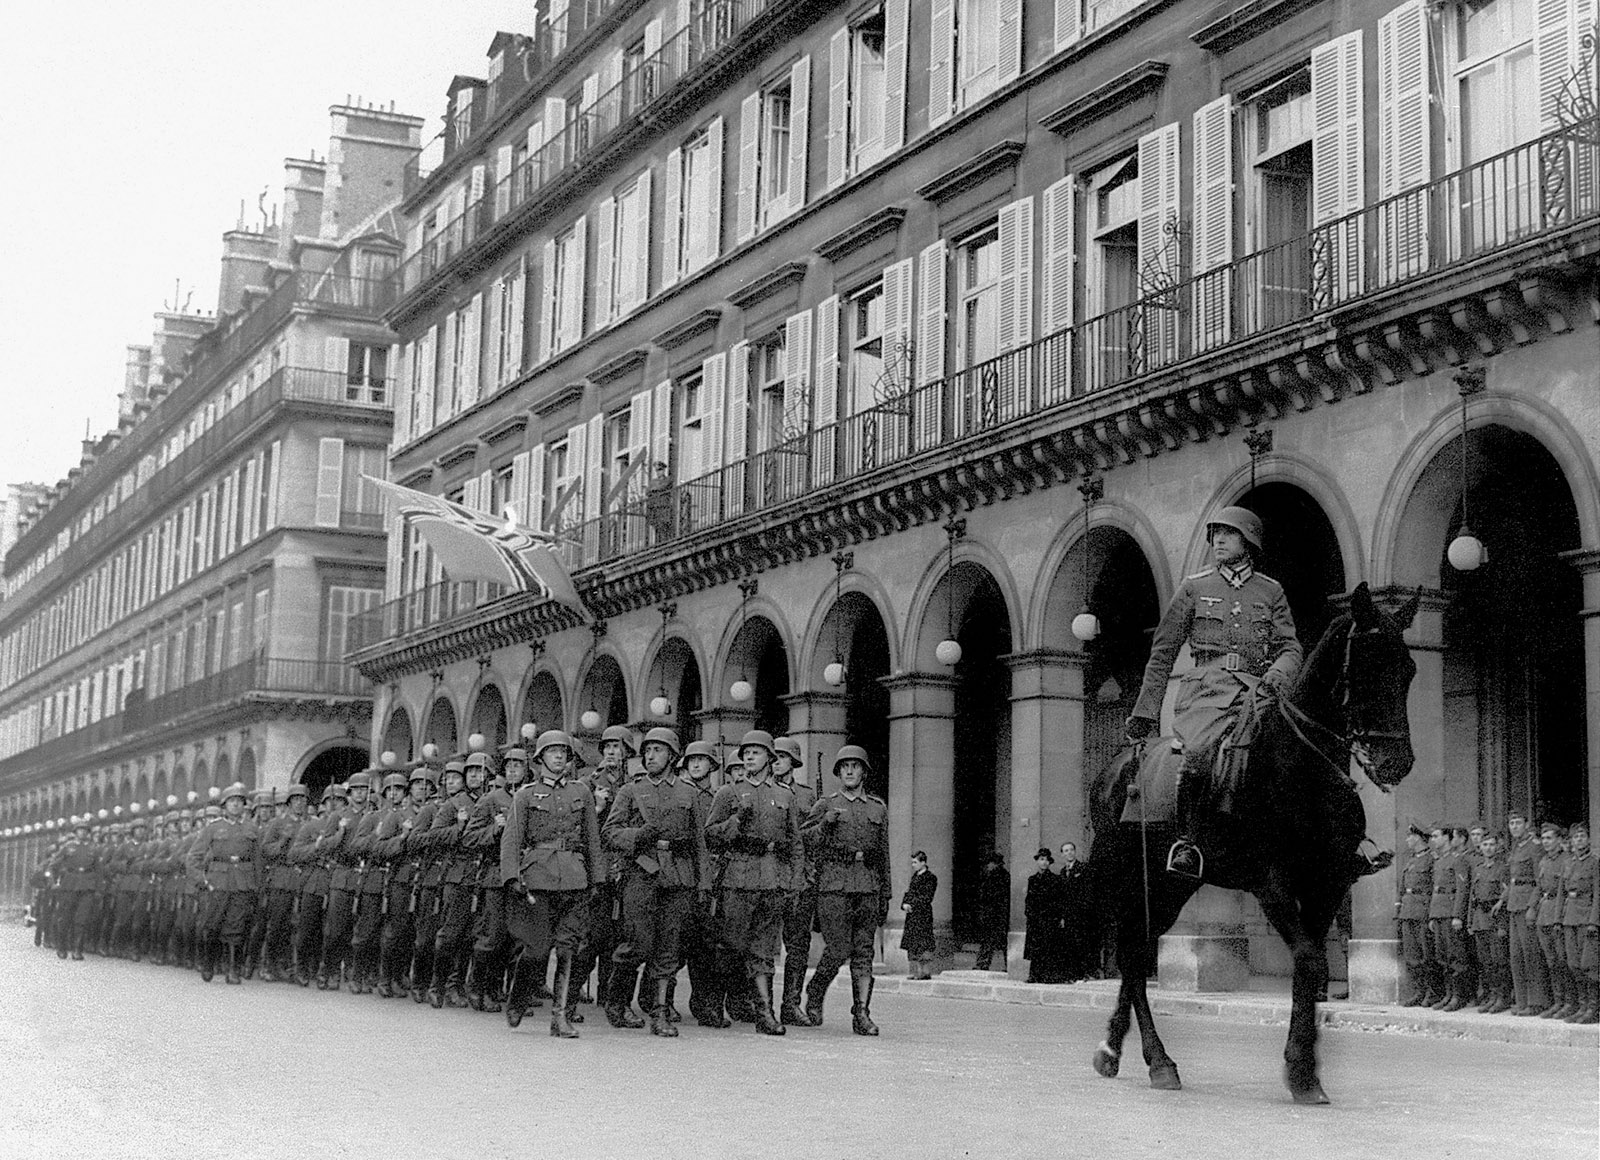 Ernst Jünger on horseback with German troops, Paris, 1941